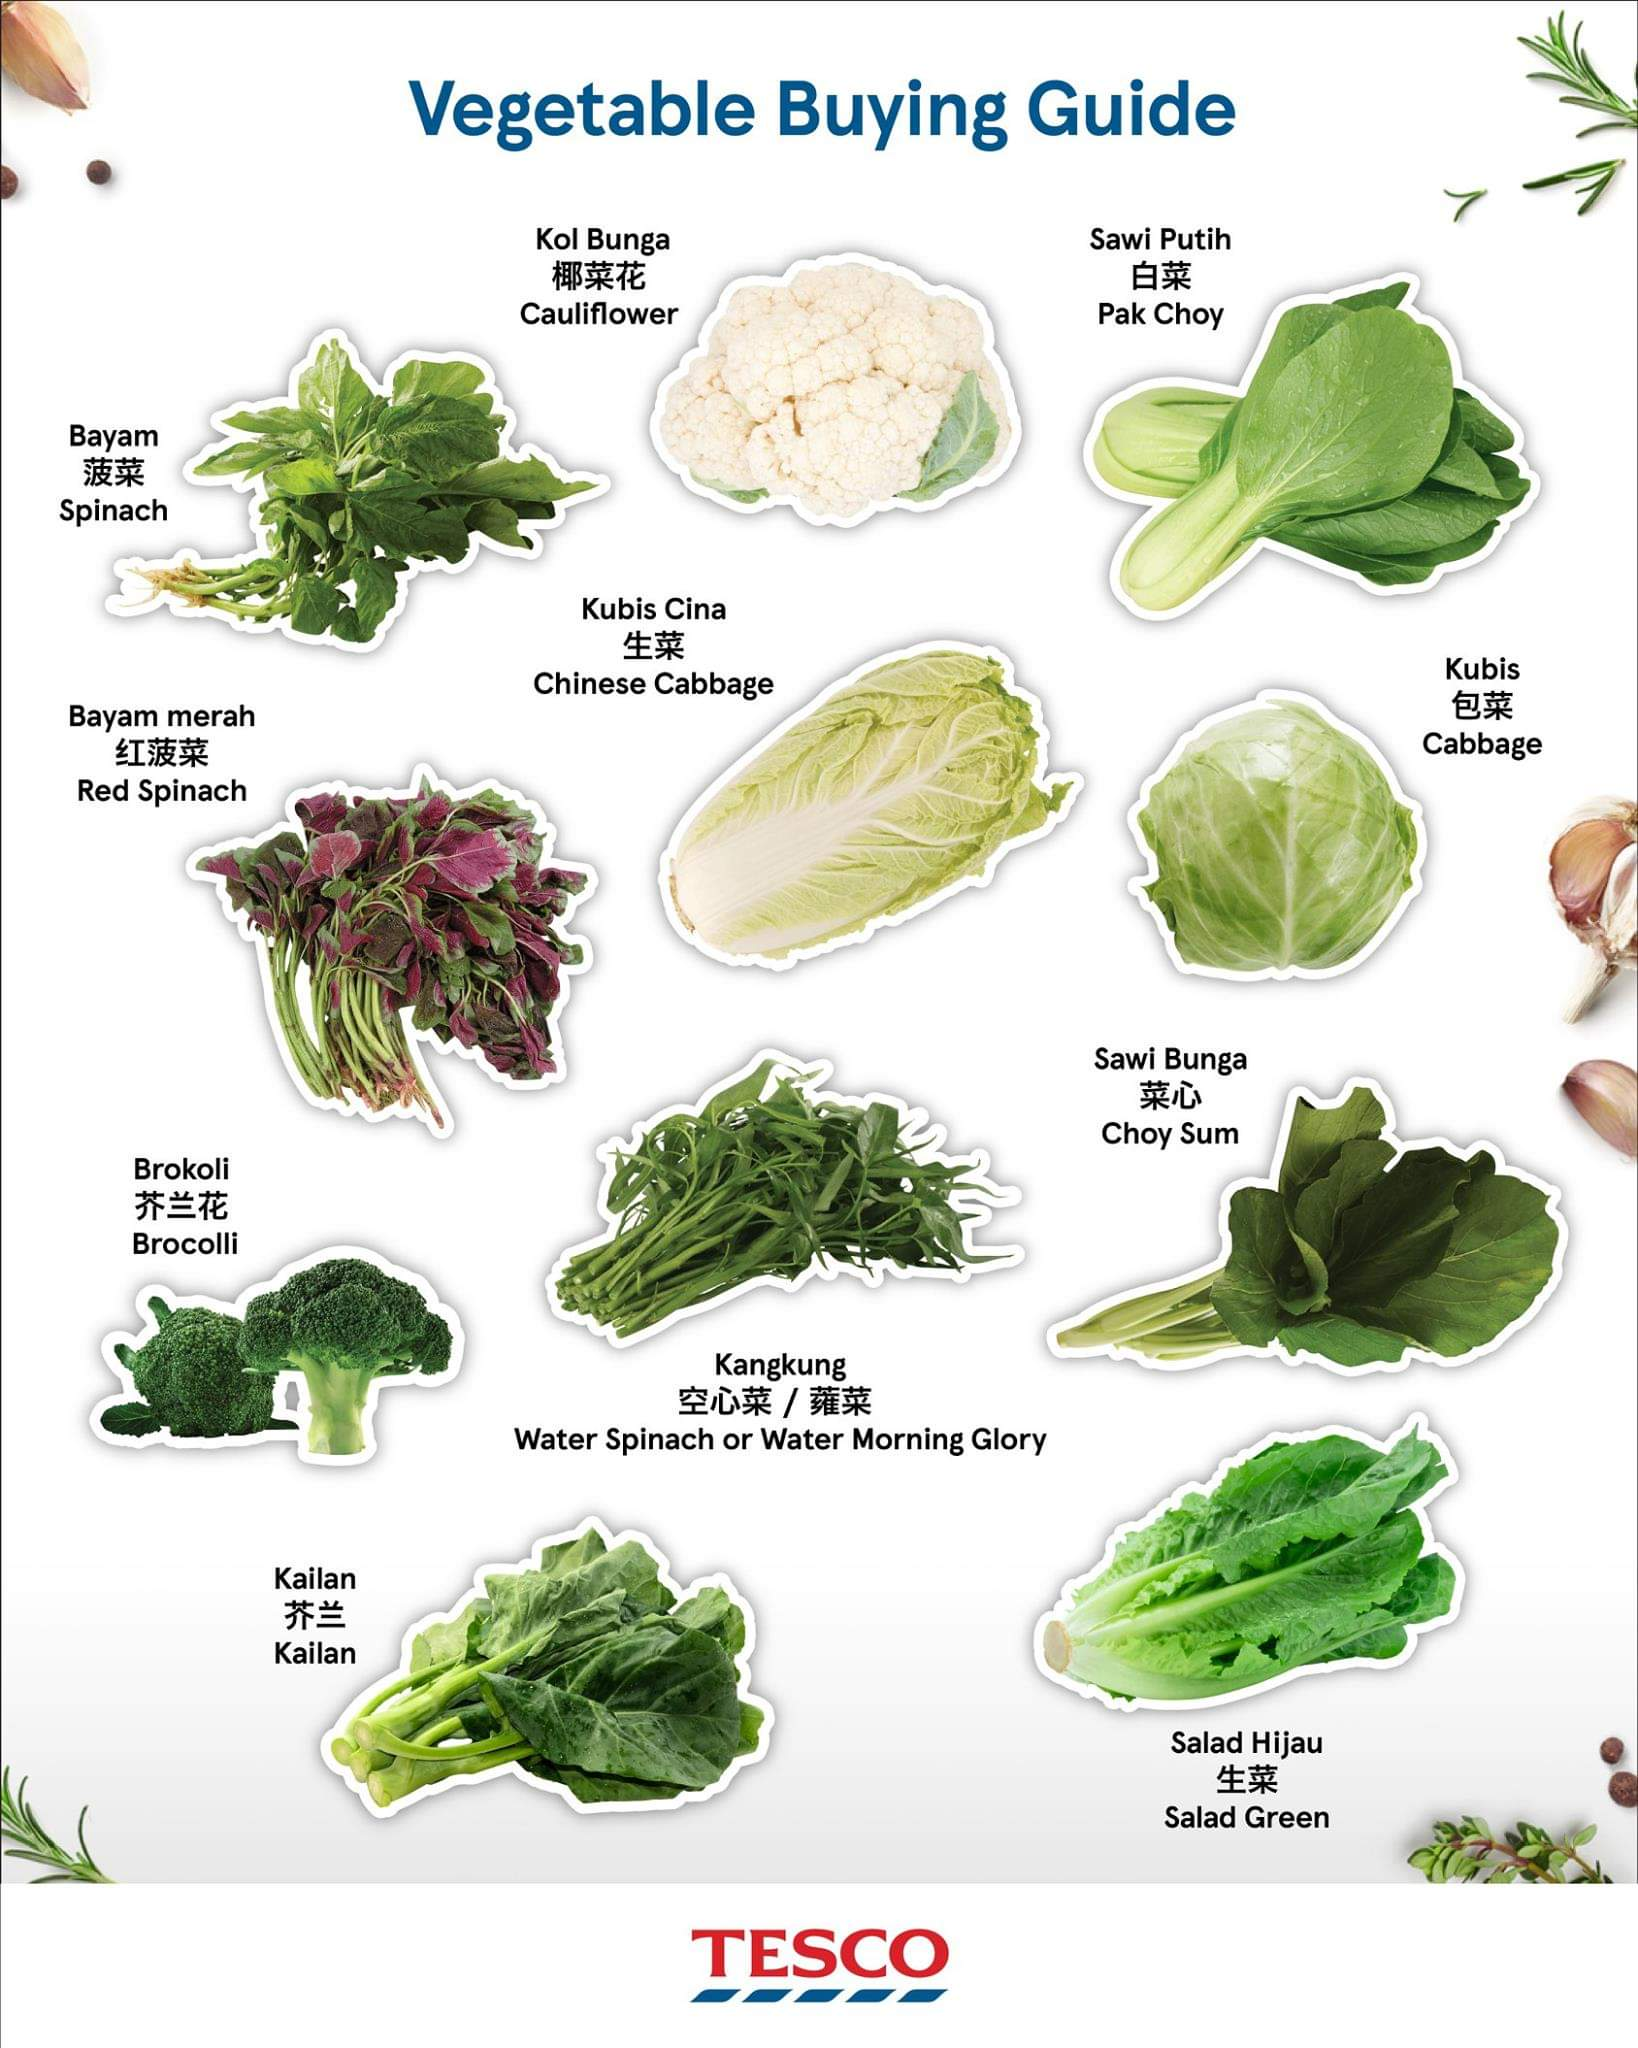 Types of Vegetable